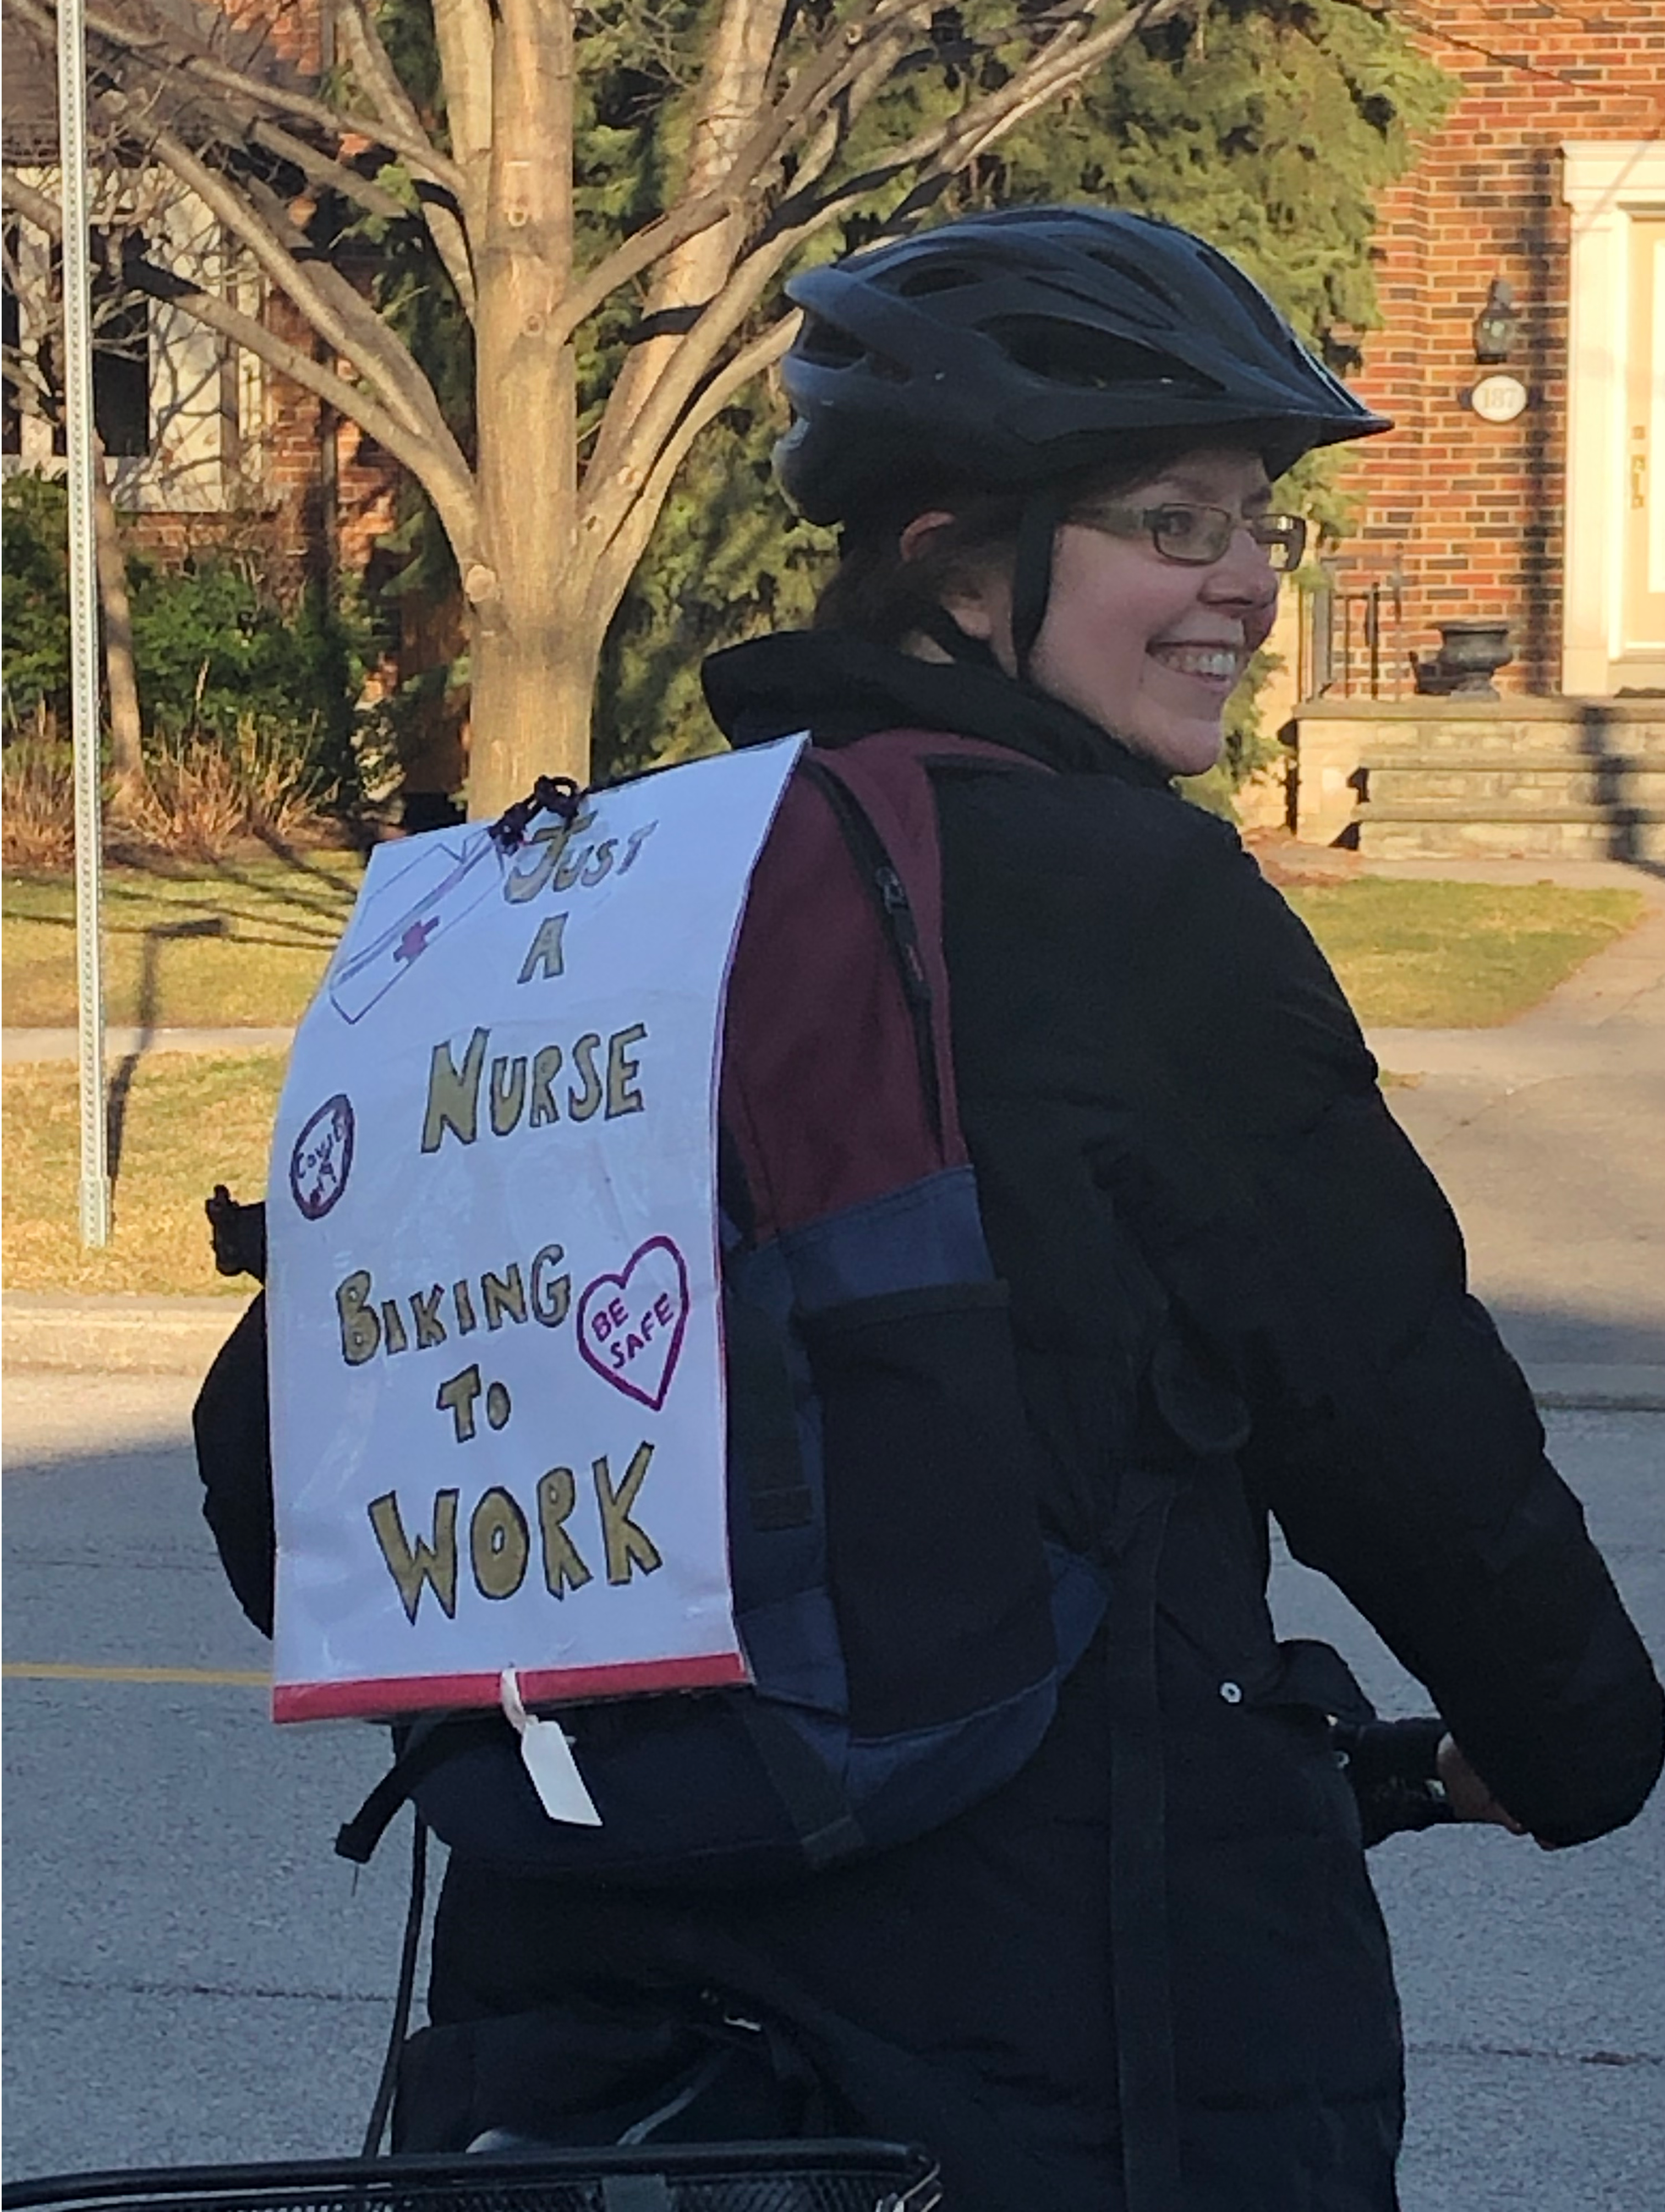 """Smiling person on bike wears a sign that says """"Just a nurse biking to work"""""""